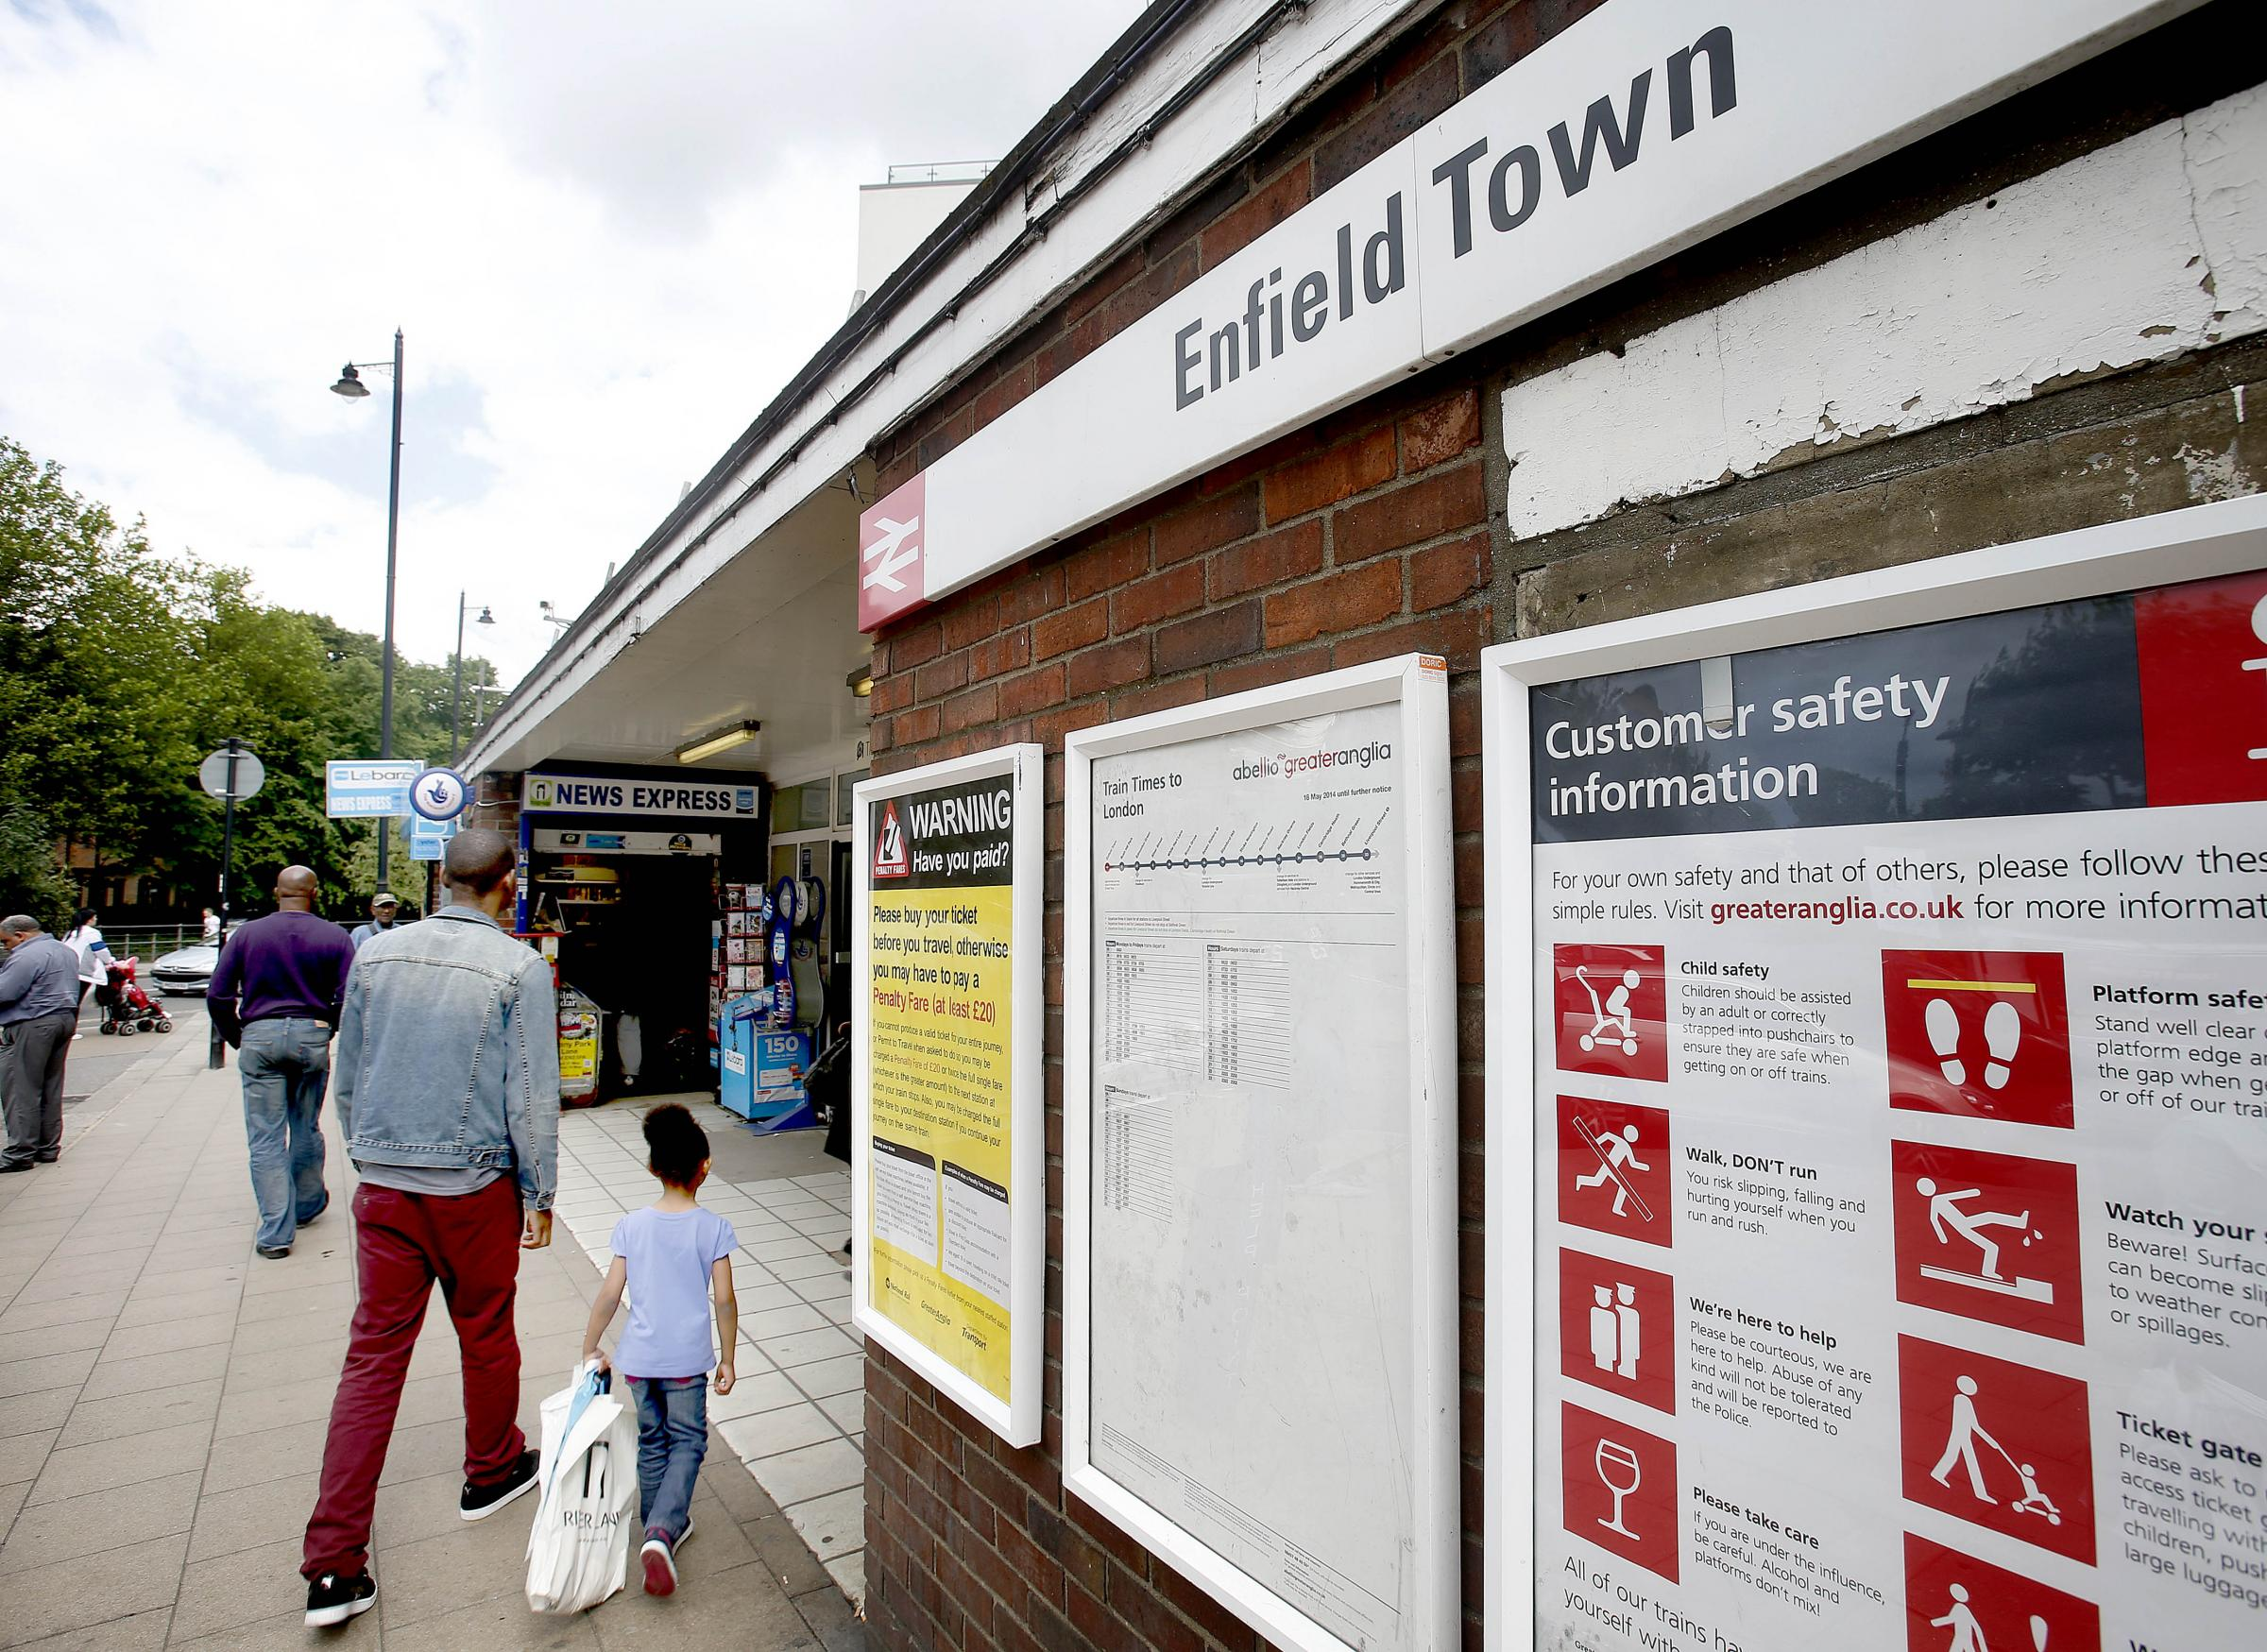 The line running from Enfield Town will be run by a new operator as of May 2015